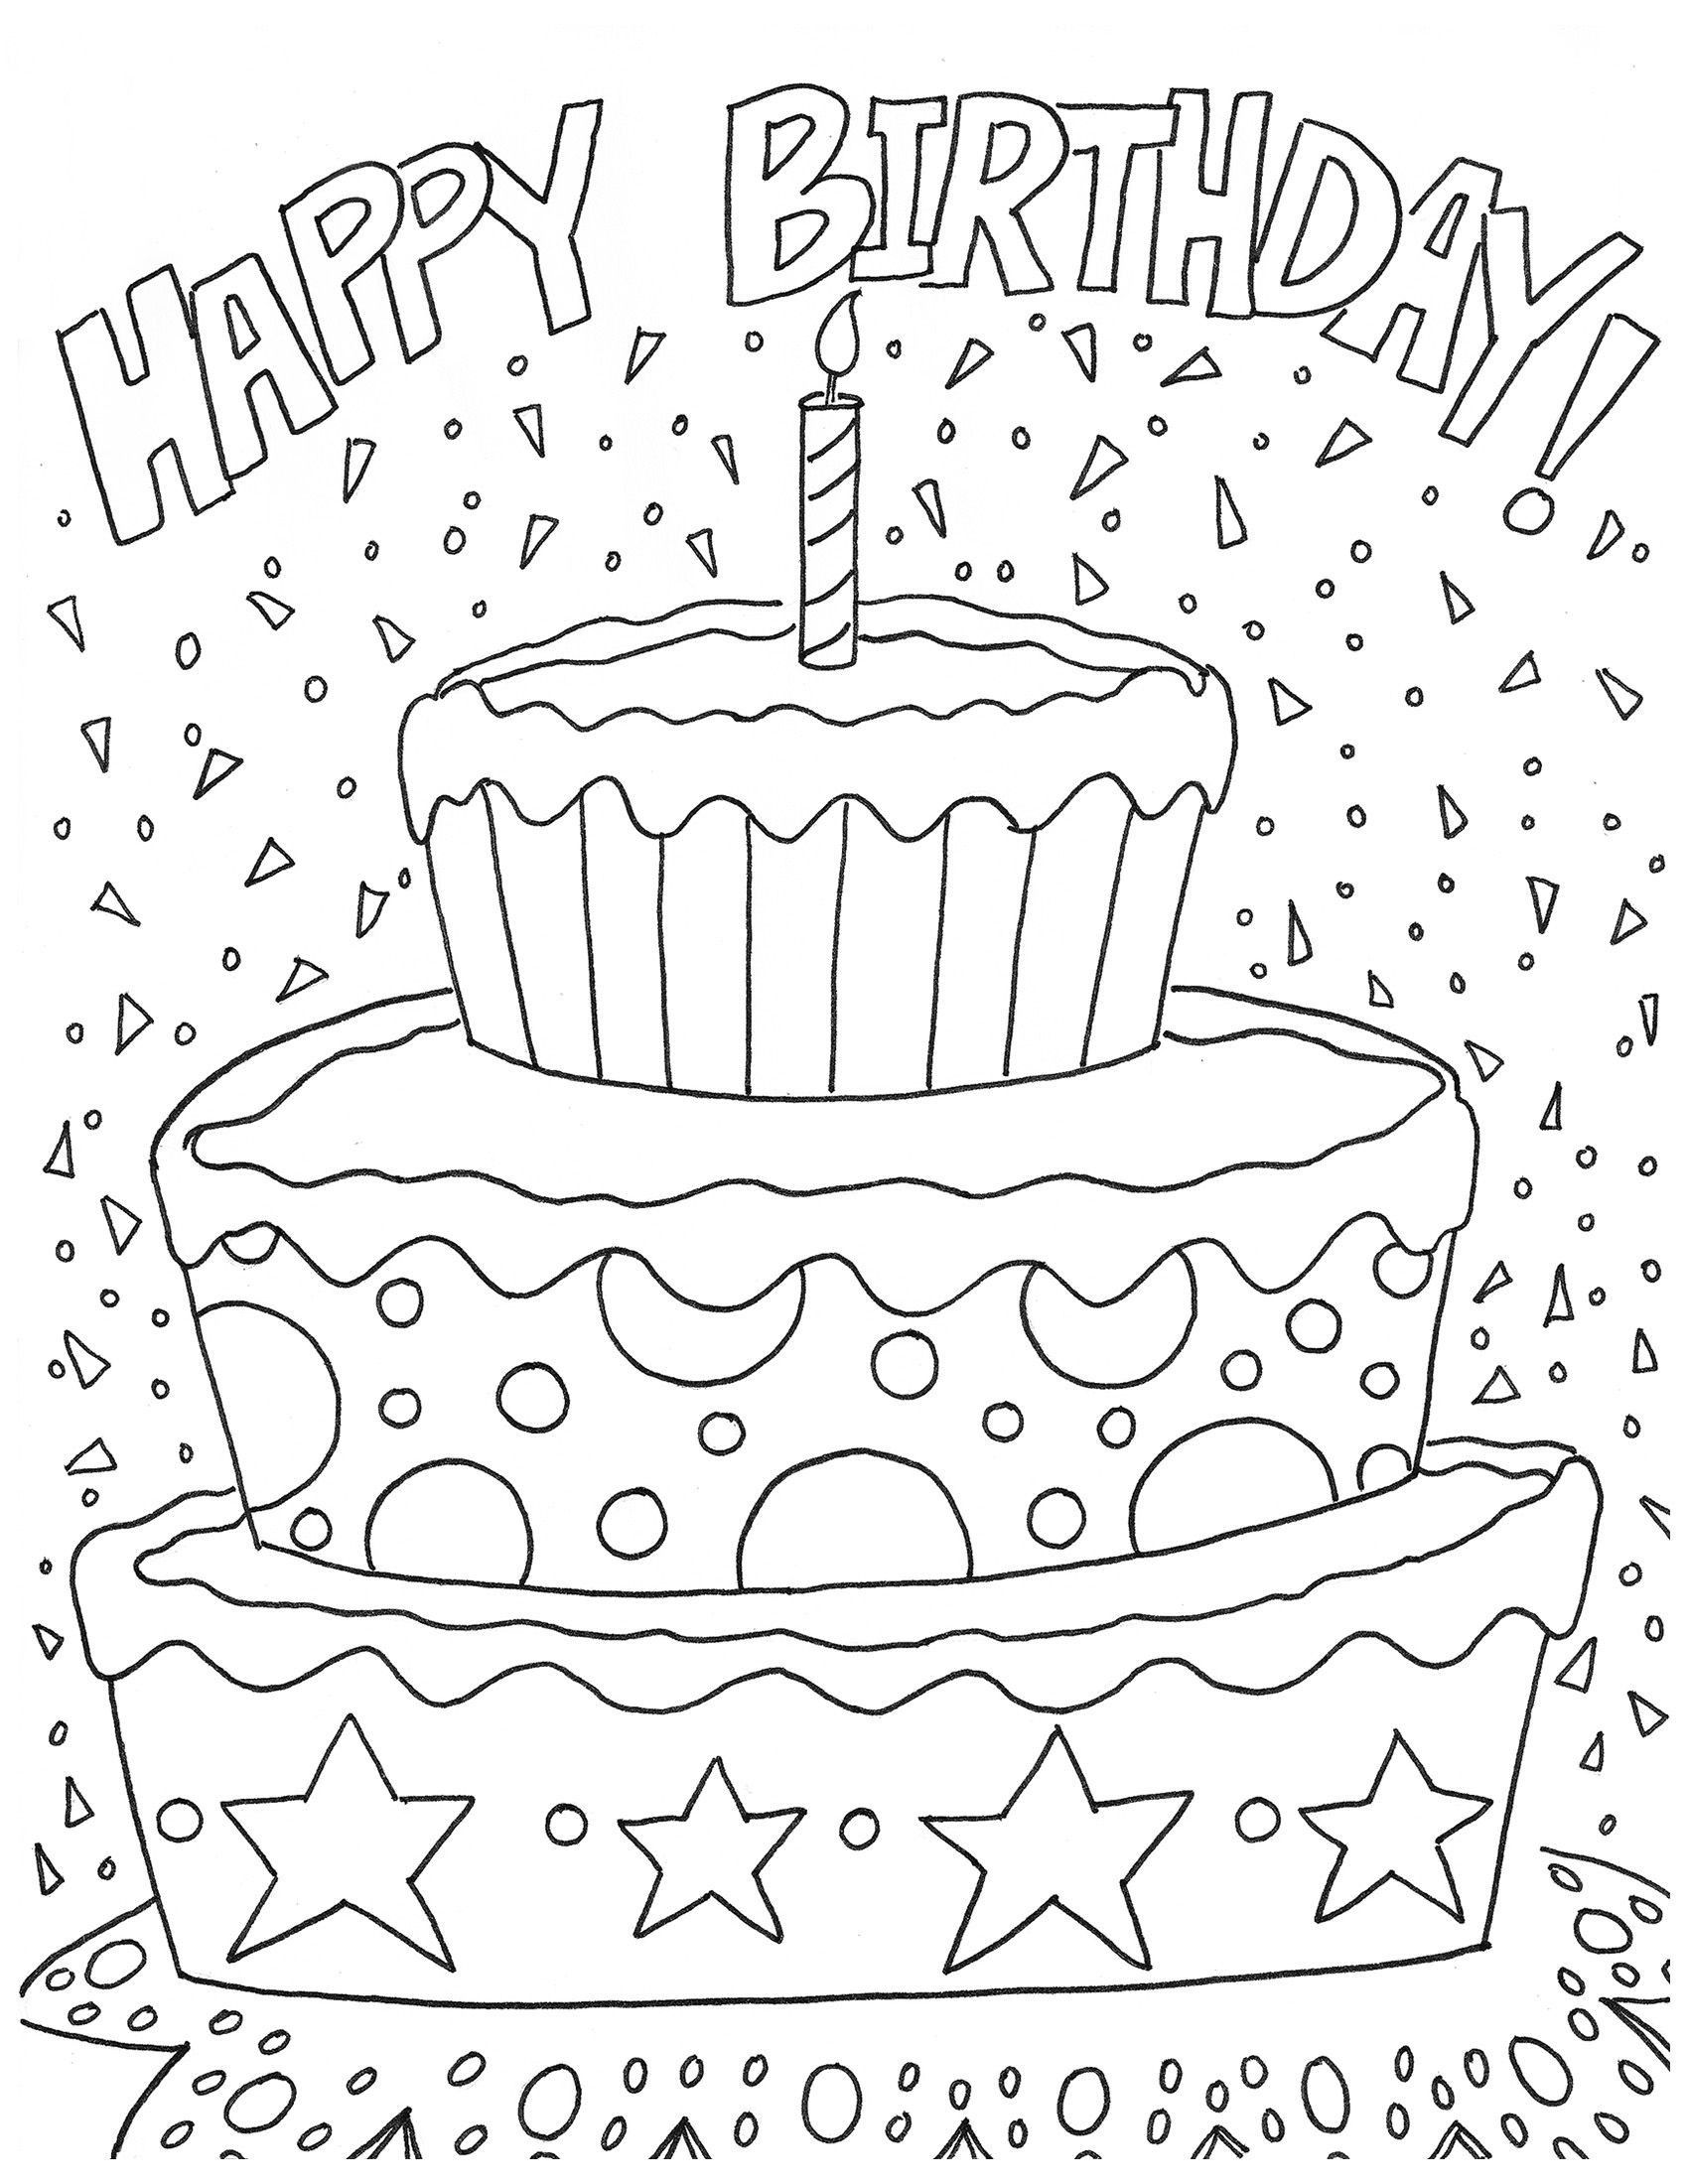 4 Alphabet Coloring Pages Ideas Coloring Pages Happy Birthday In 2020 Coloring Birthday Cards Happy Birthday Coloring Pages Birthday Coloring Pages